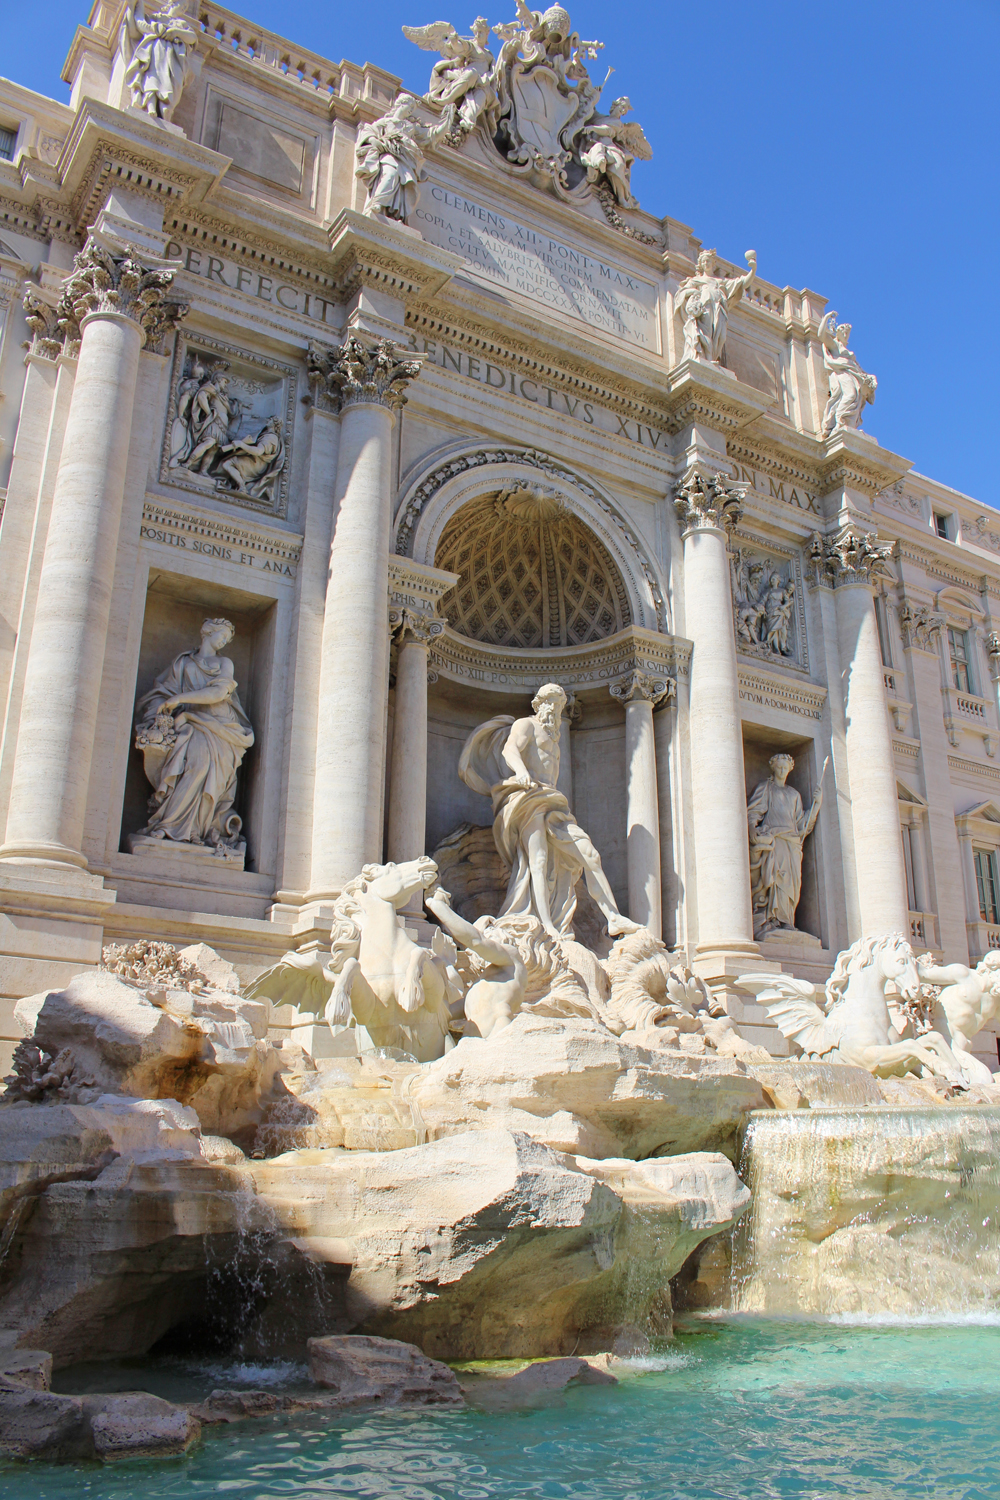 The Trevi Fountain, Rome - style & travel blog